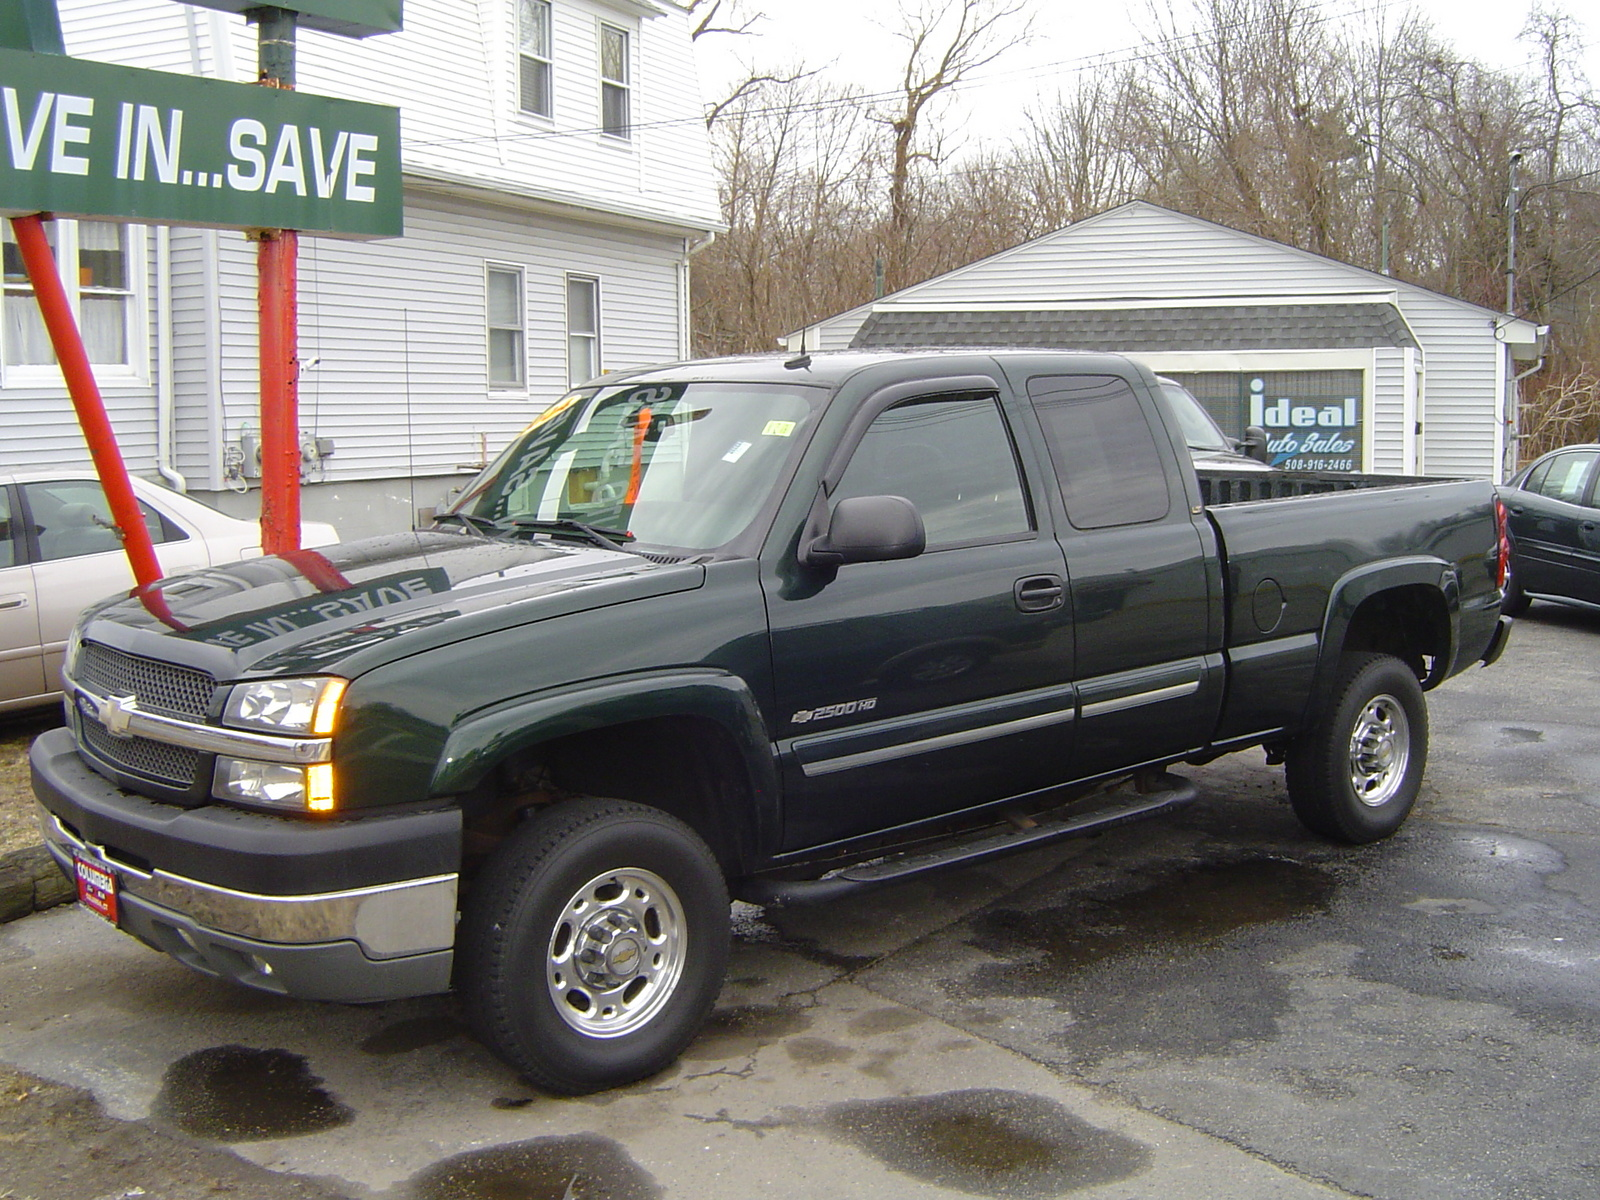 2004 silverado 1500 extended cab dimensions autos post. Black Bedroom Furniture Sets. Home Design Ideas